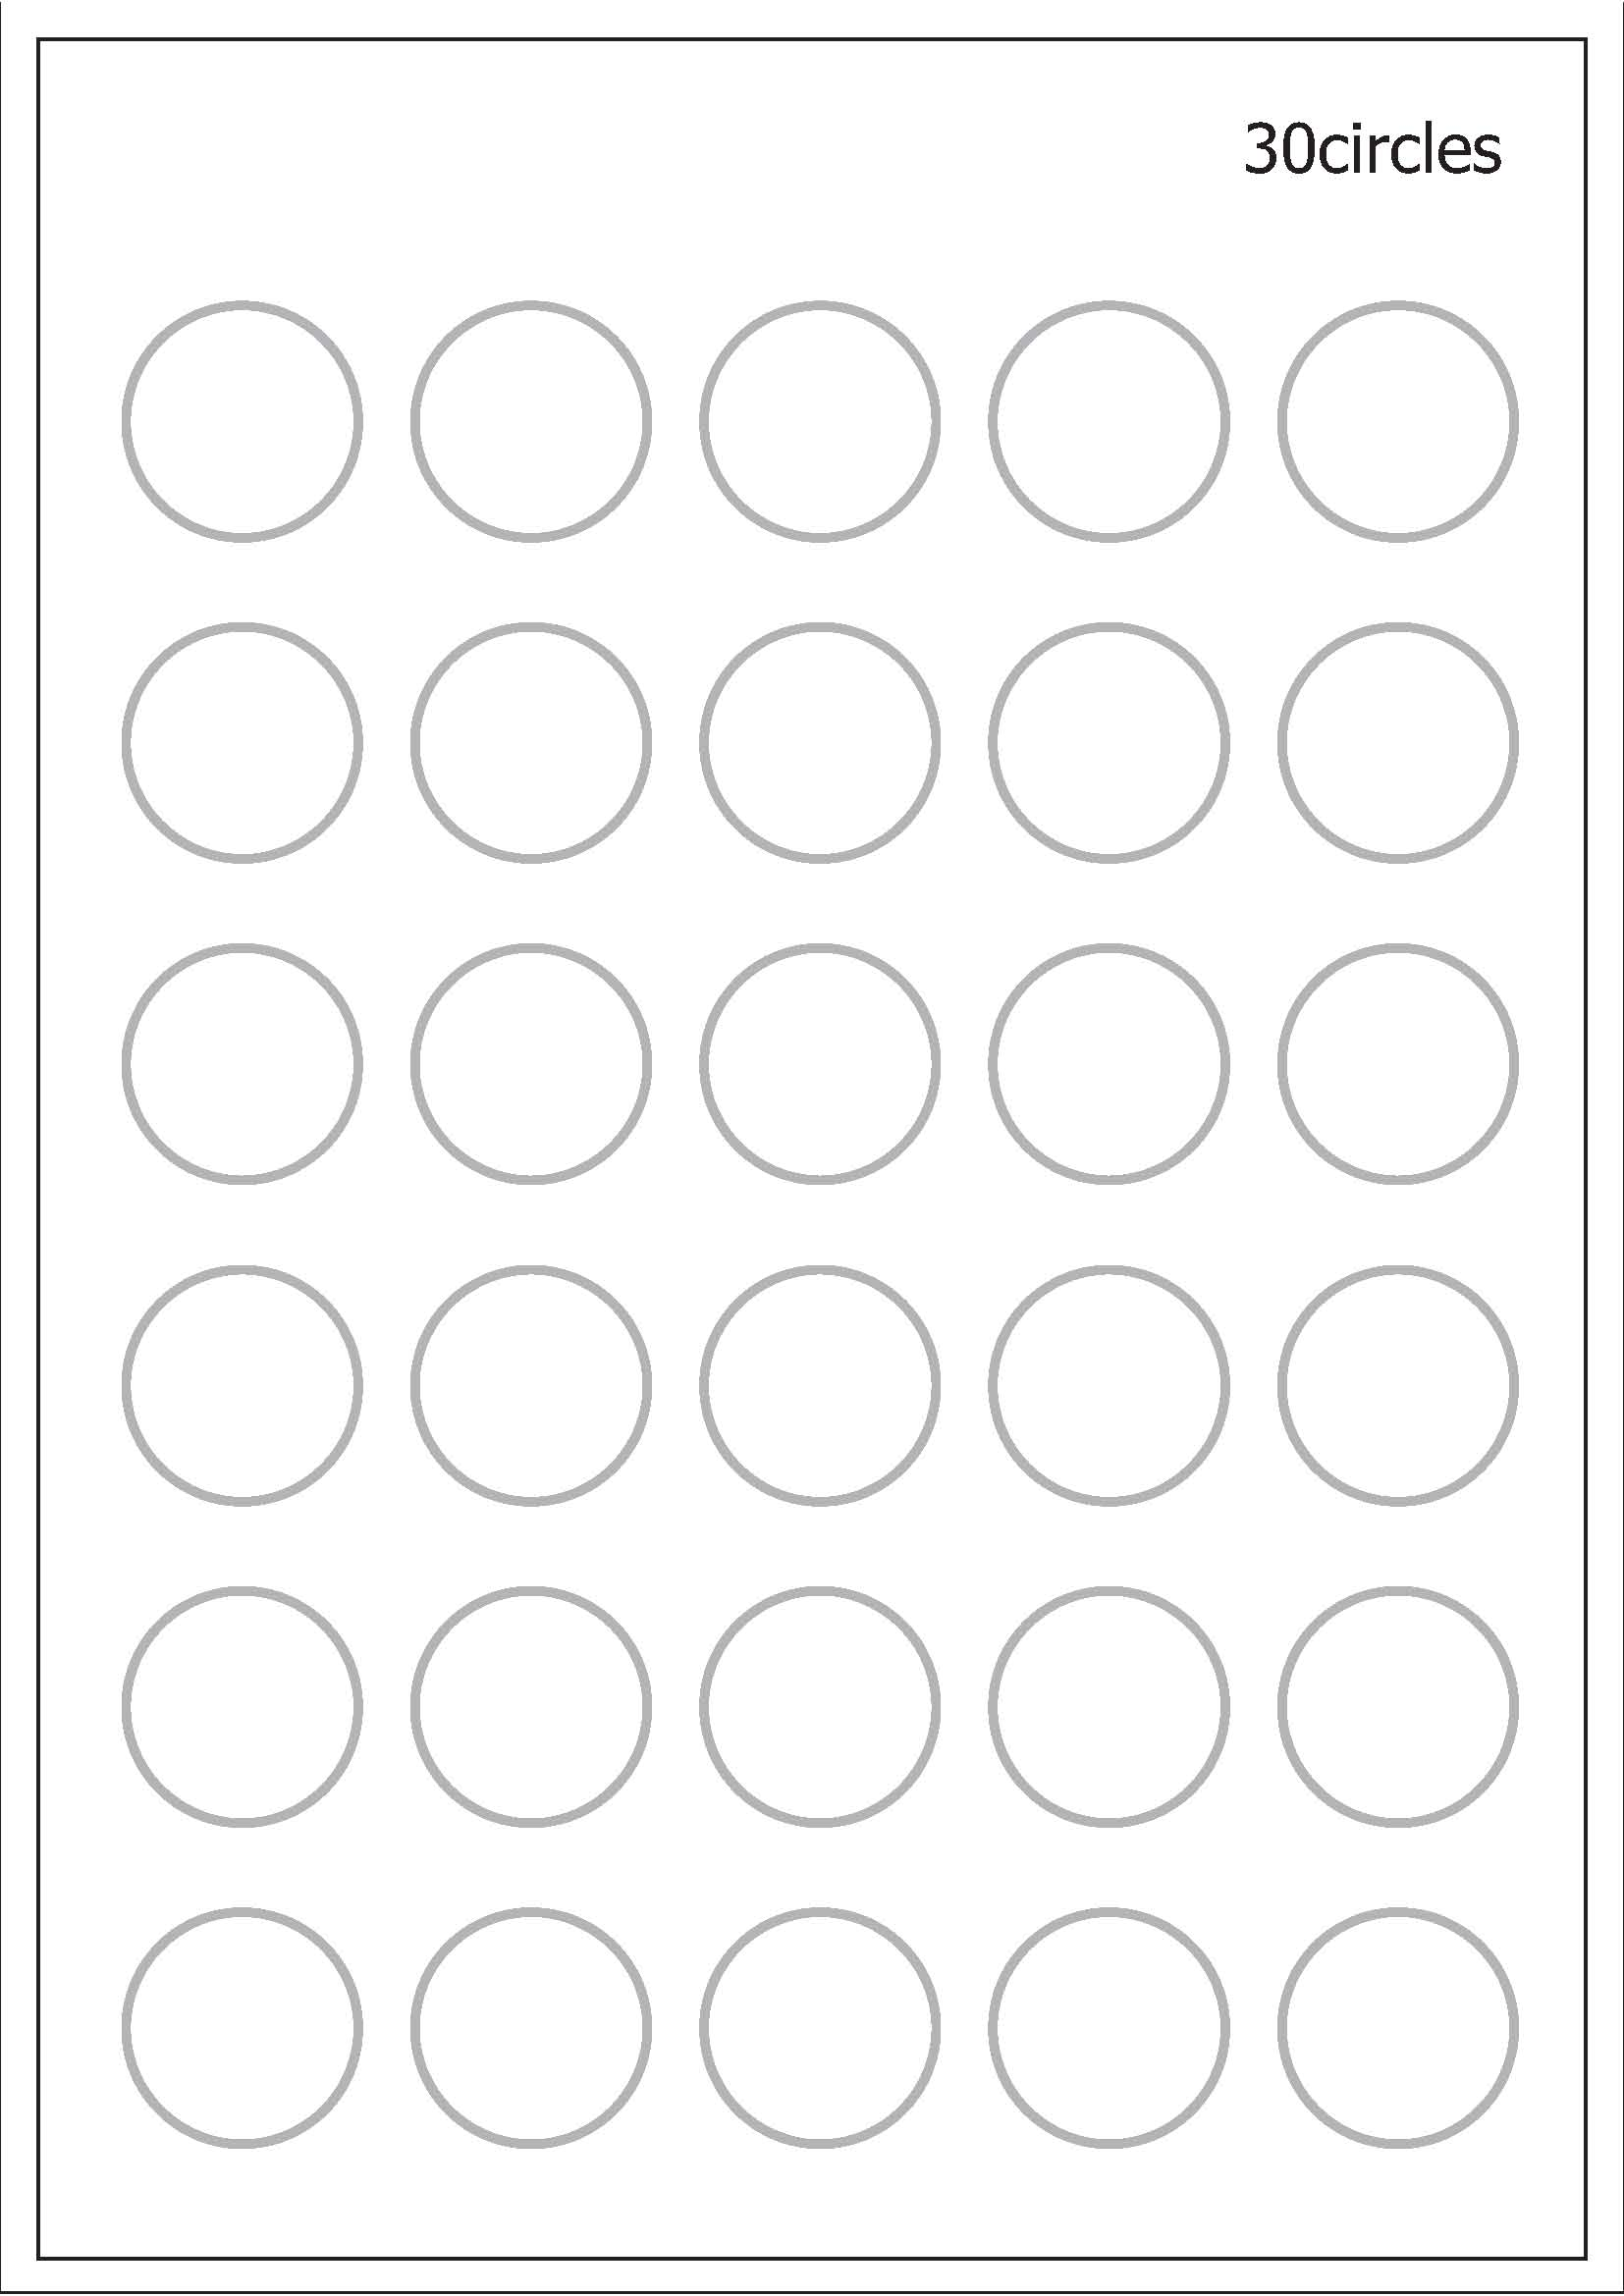 Try The 30 Circles Test